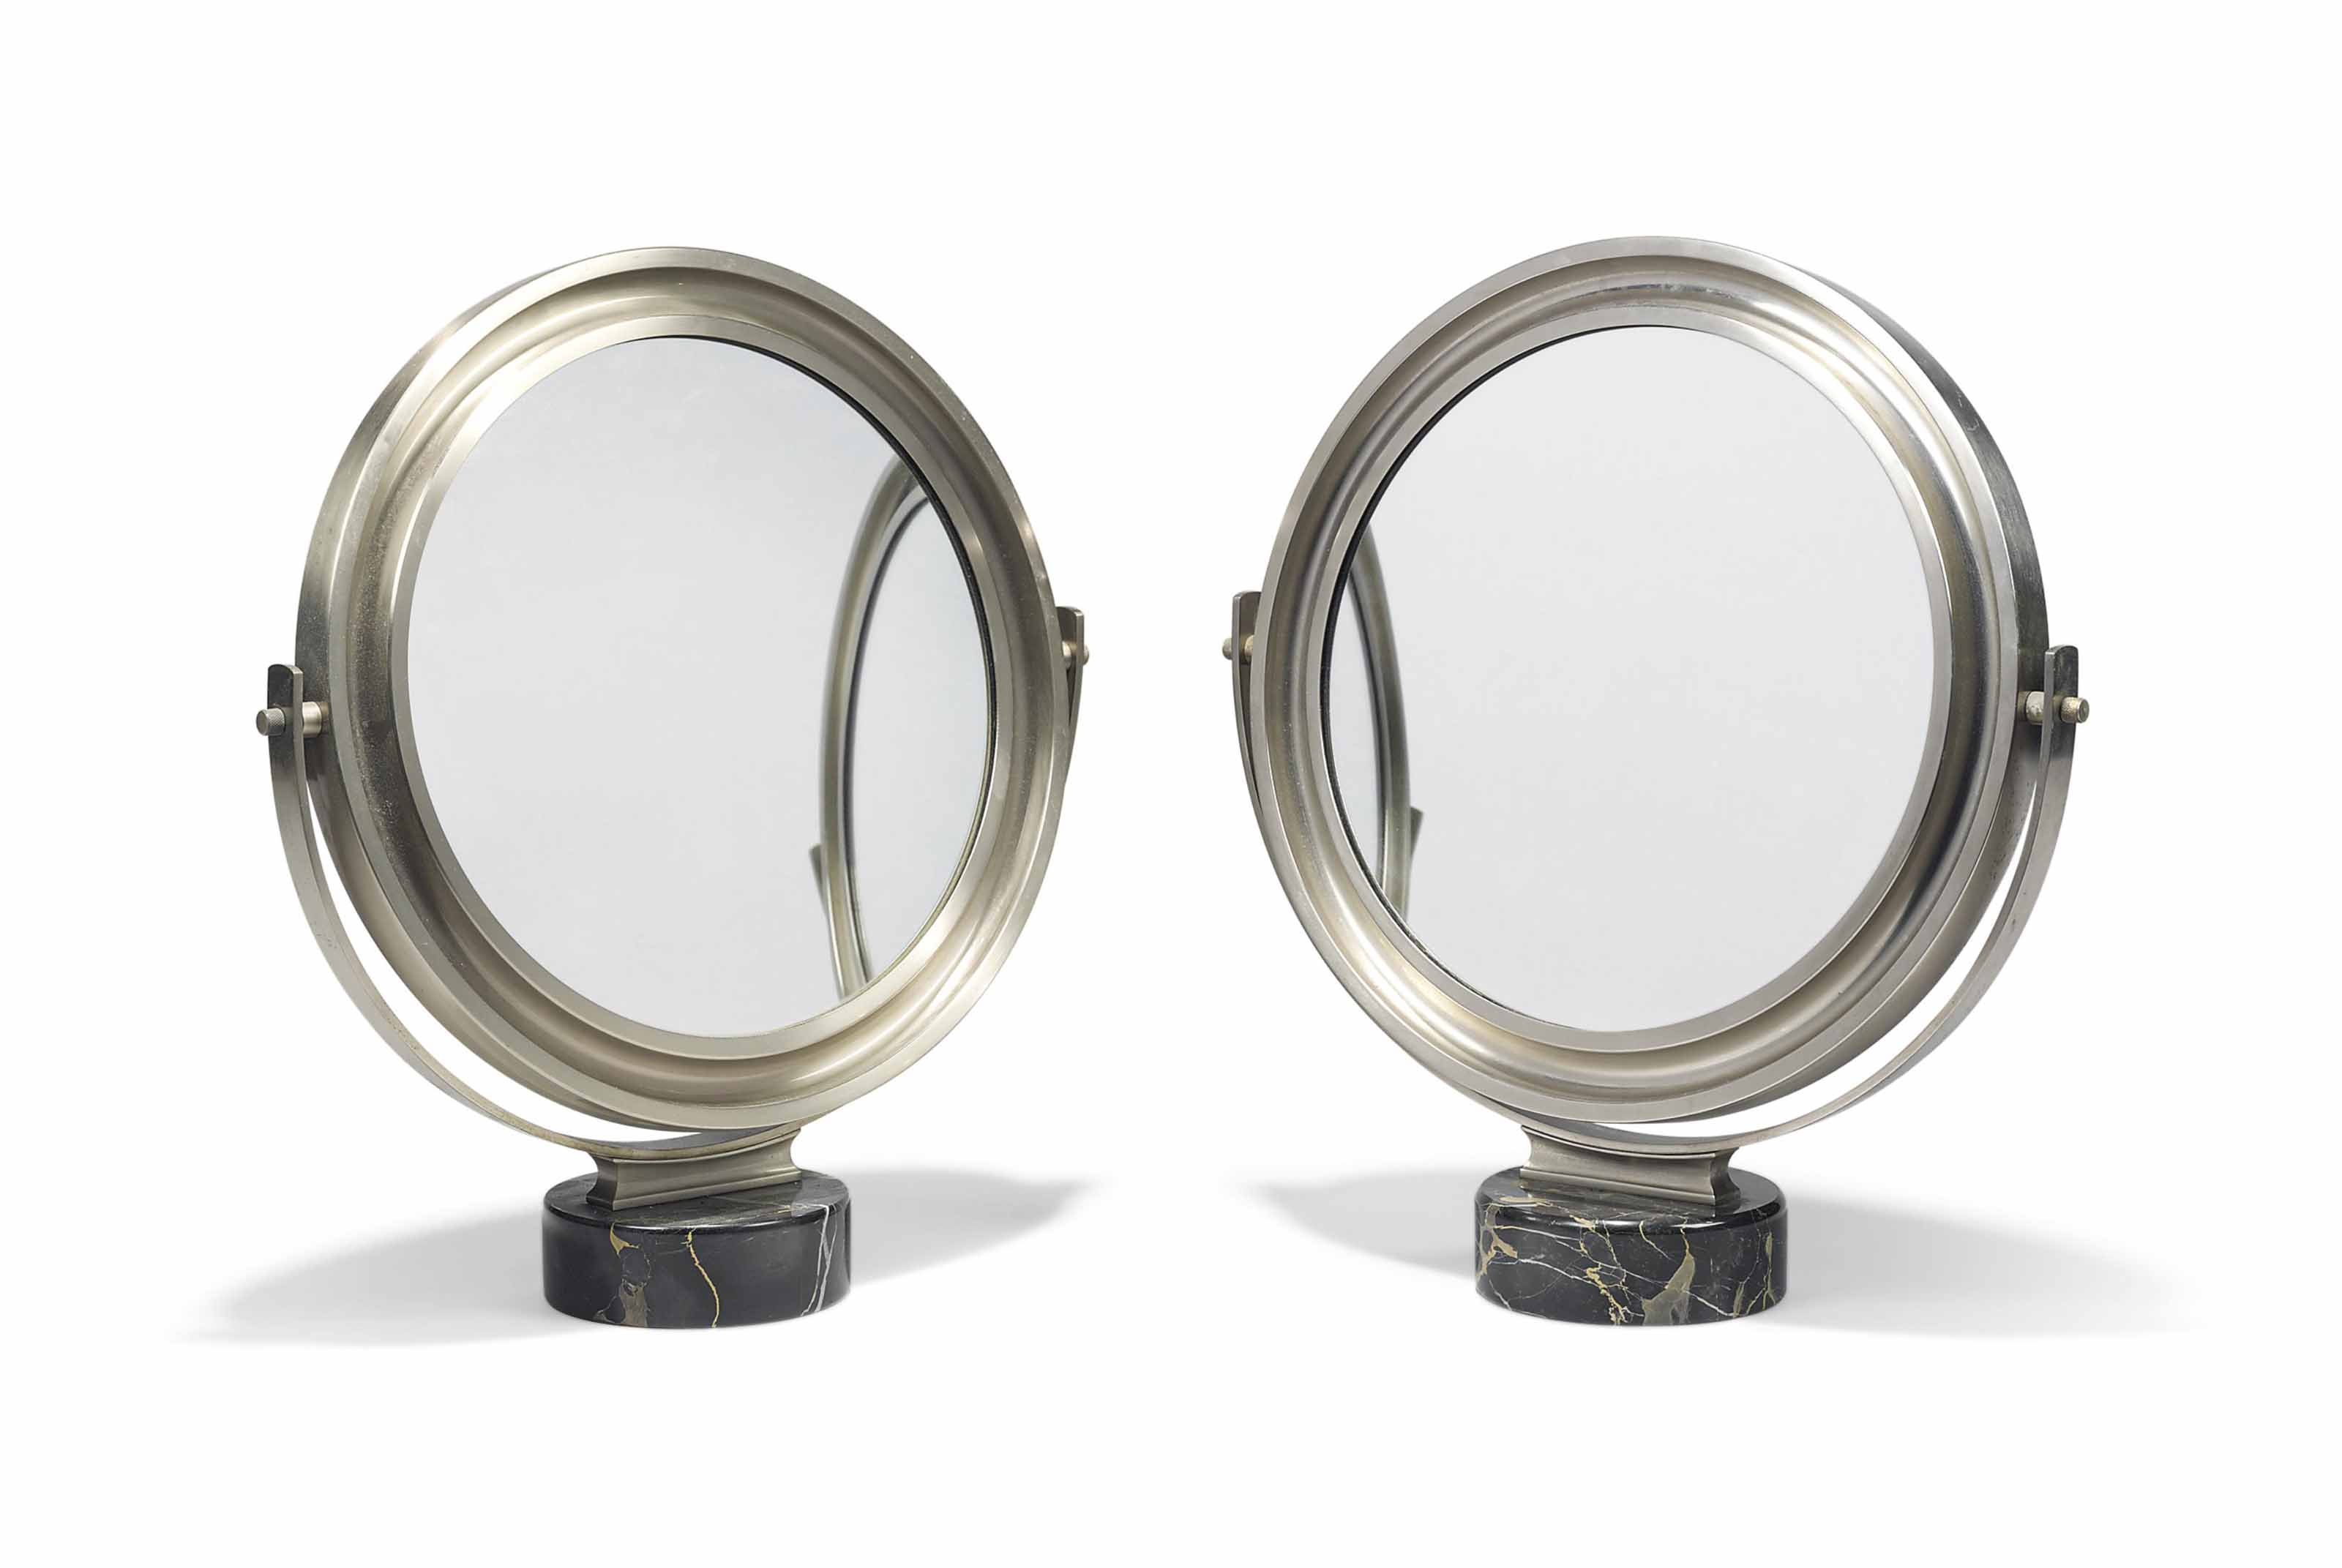 A PAIR OF NICKEL-PLATED MIRROR